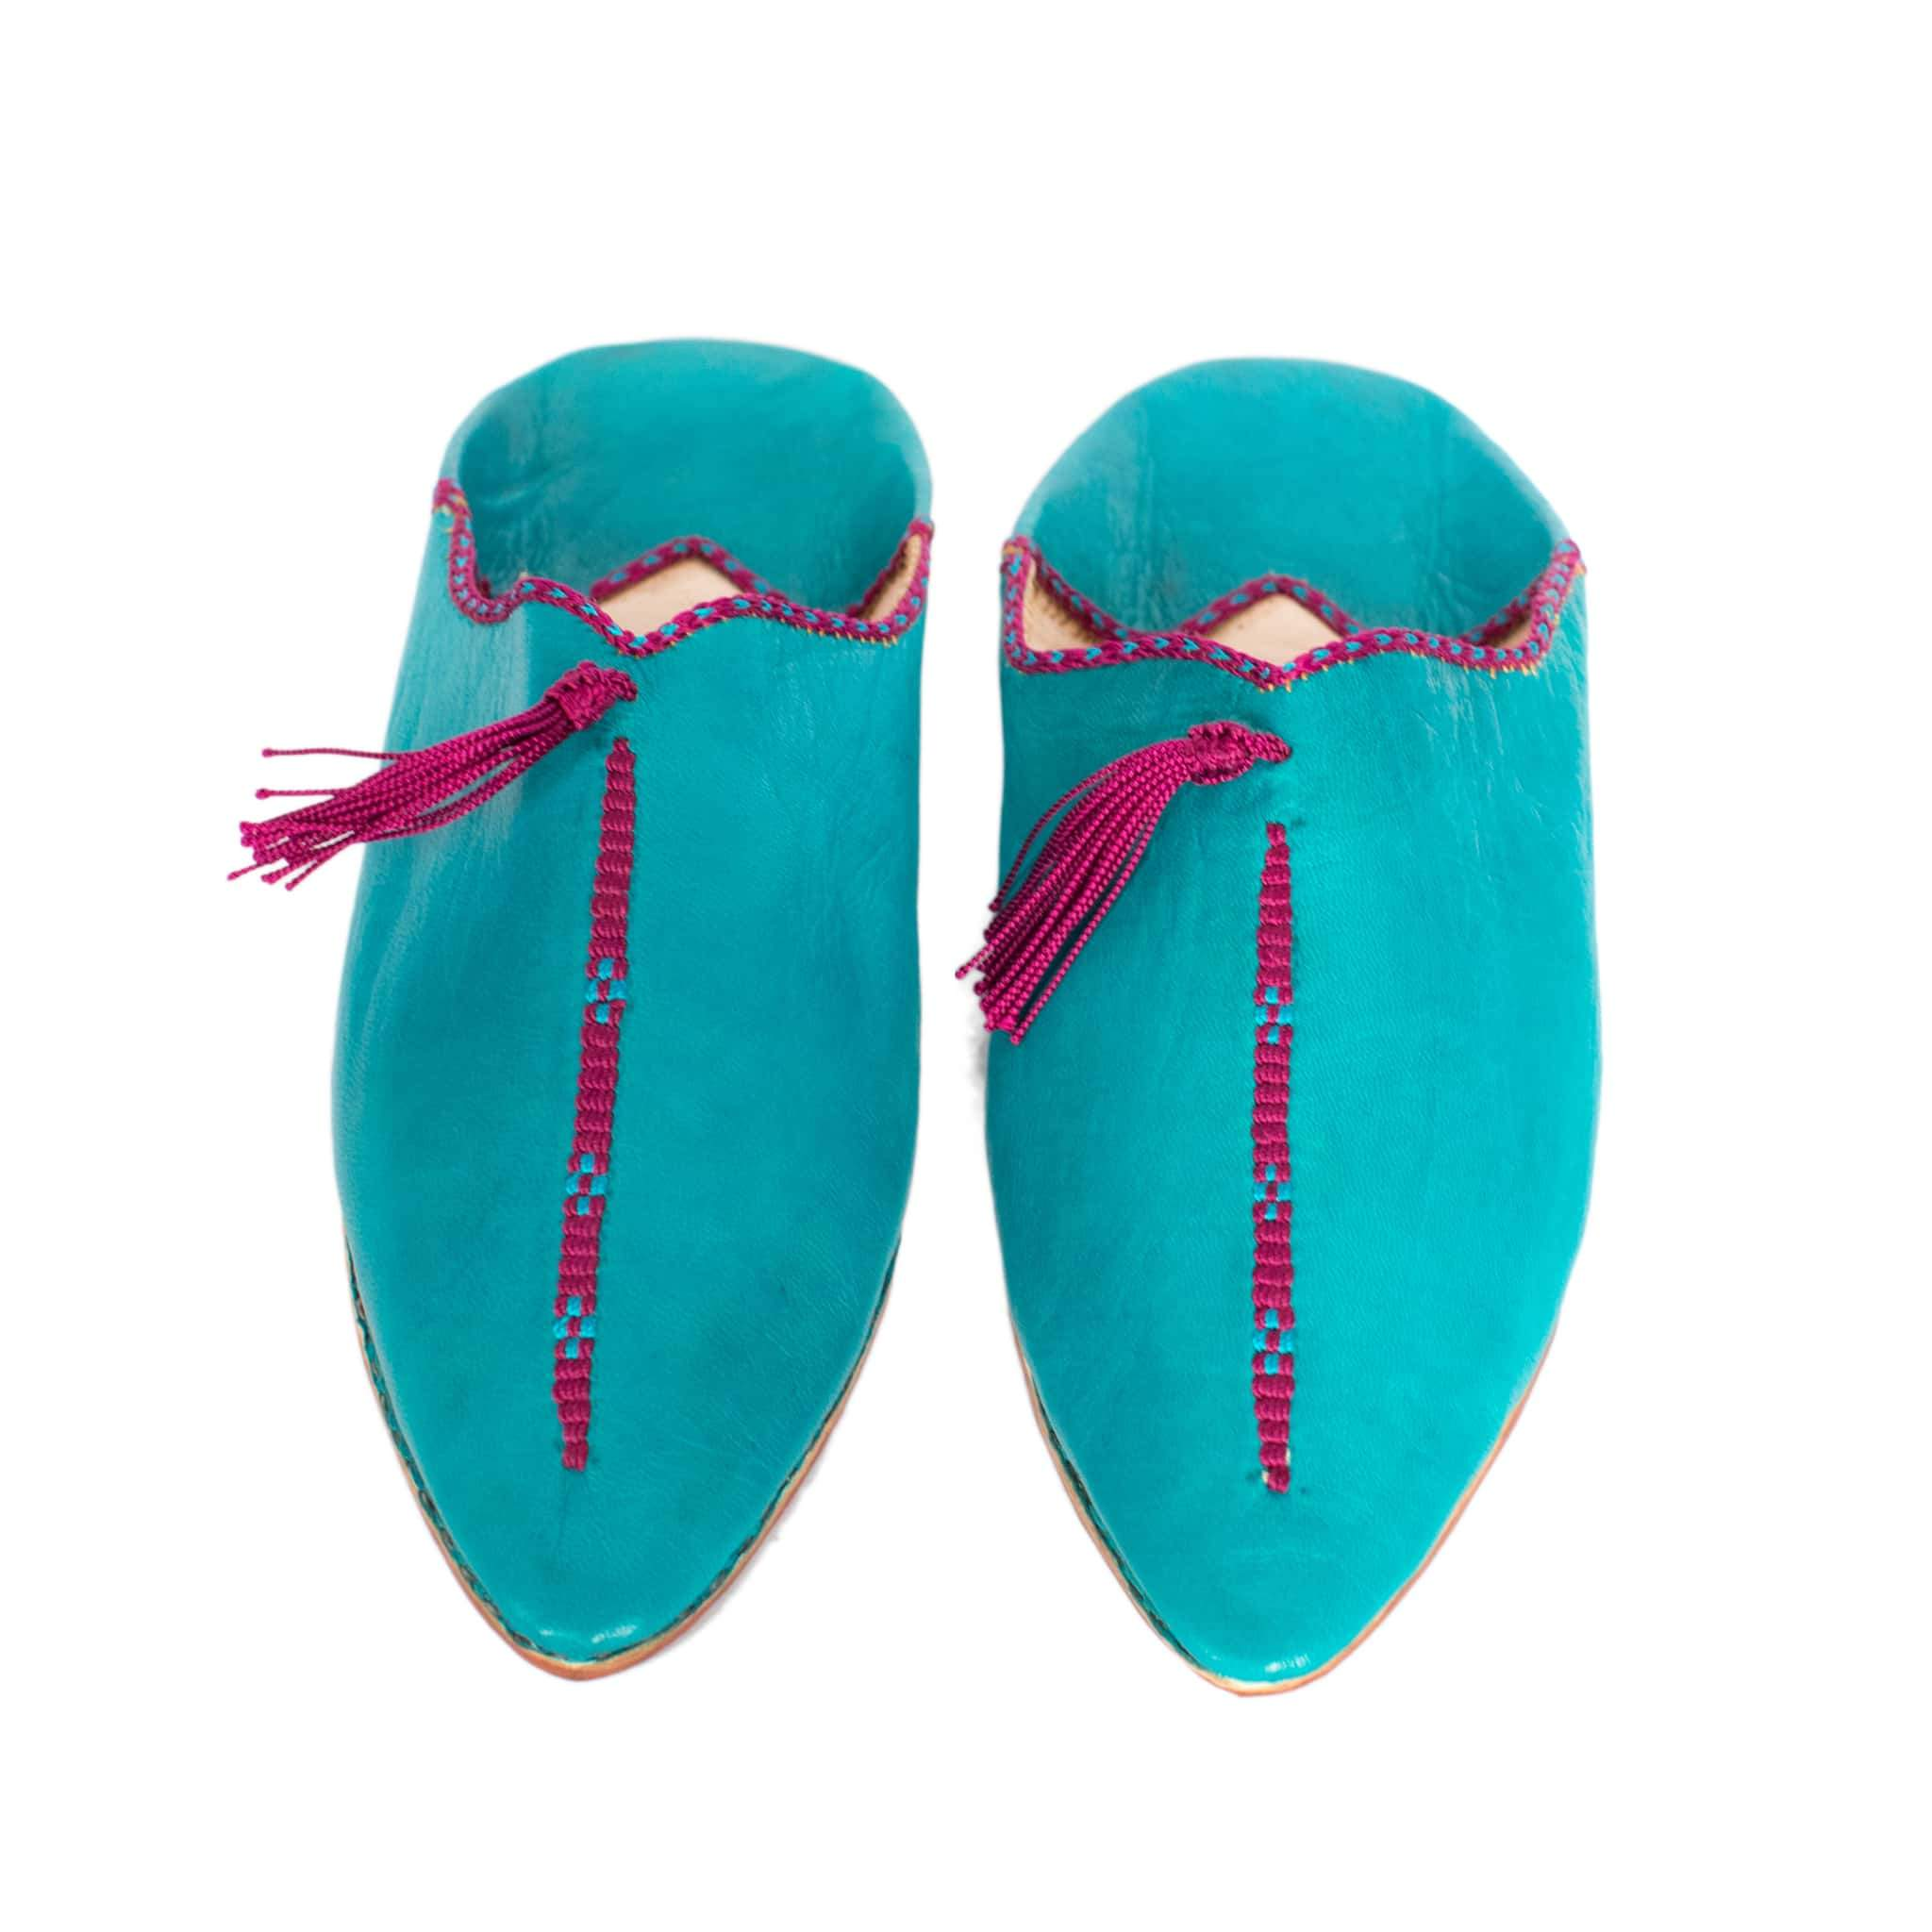 Hard Sole Babouche Leather Slippers in Turquoise, Purple from Abury